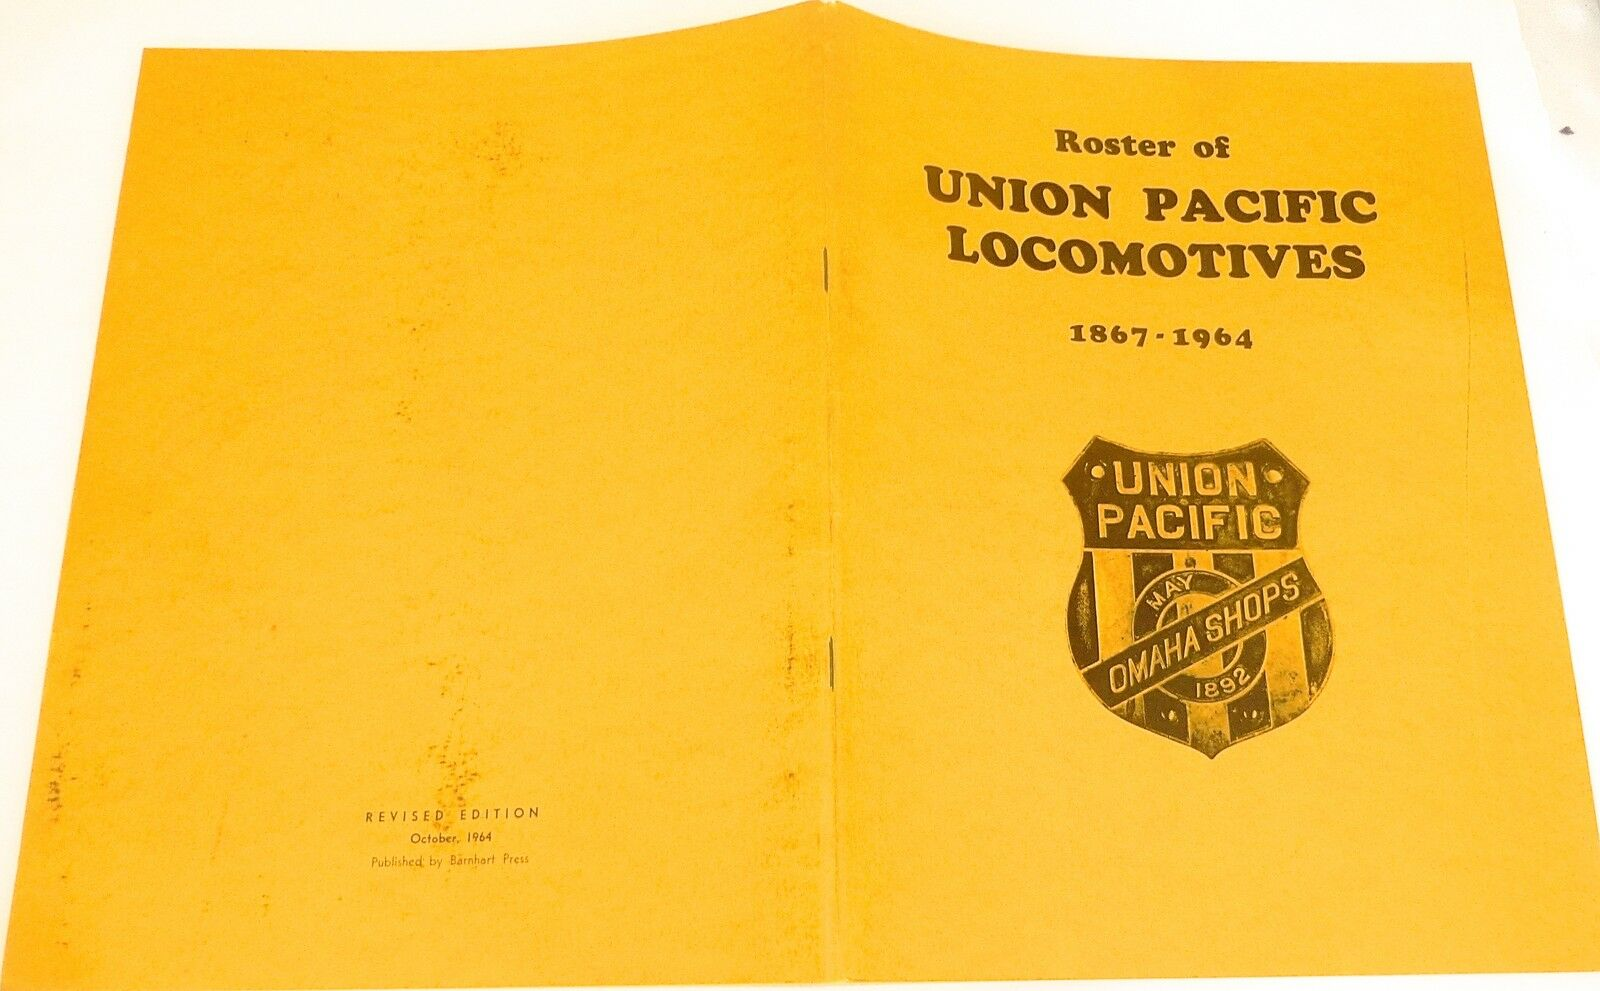 Roster of Union Pacific Locomotives 1867 1964 Revised Edition Oct 1964 Å